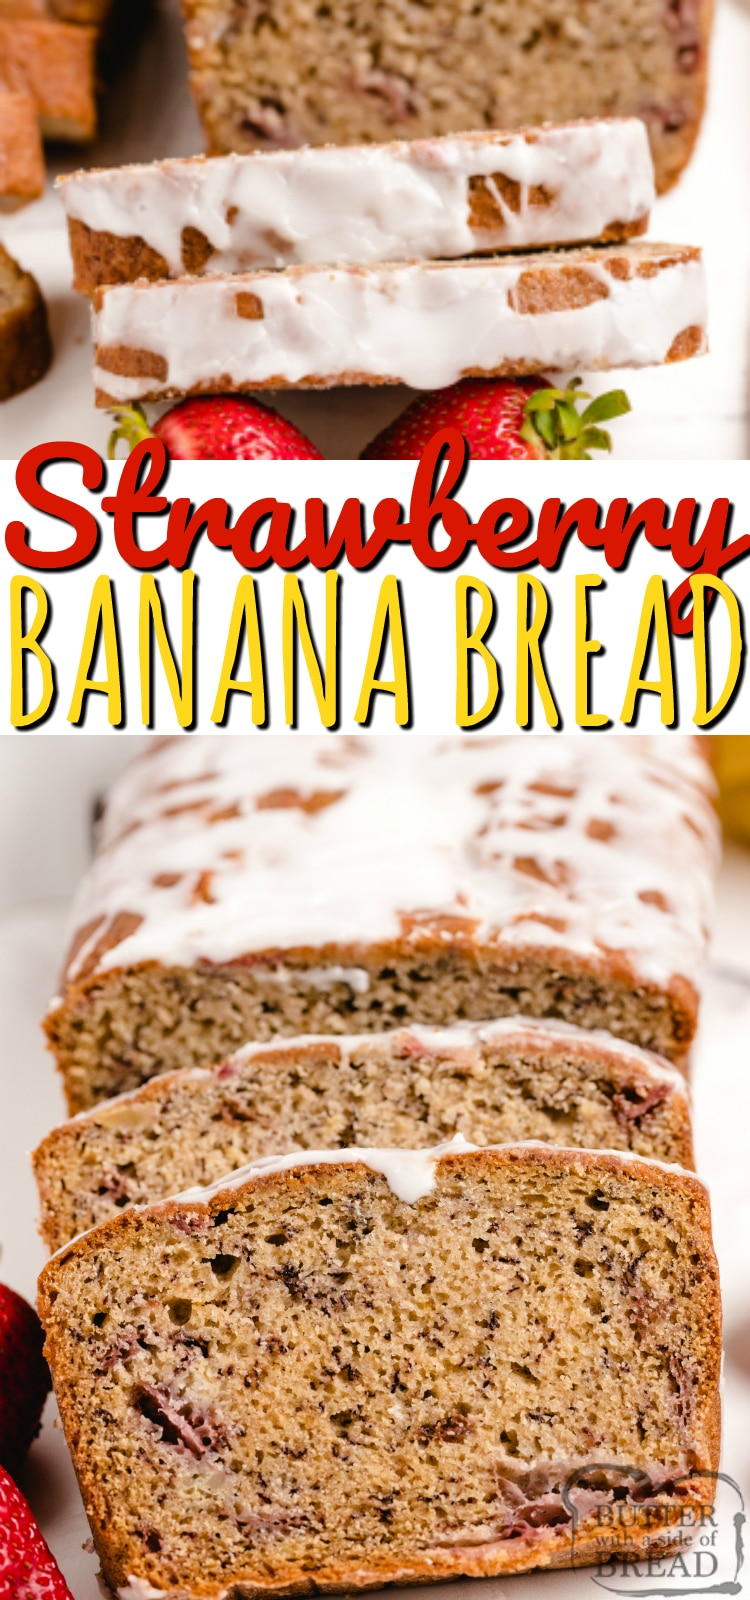 Strawberry Banana Bread is a delicious variation on traditional banana bread. Full of fresh strawberries and bananas and topped with a delicious lemon glaze, this banana bread recipe is one you must try!